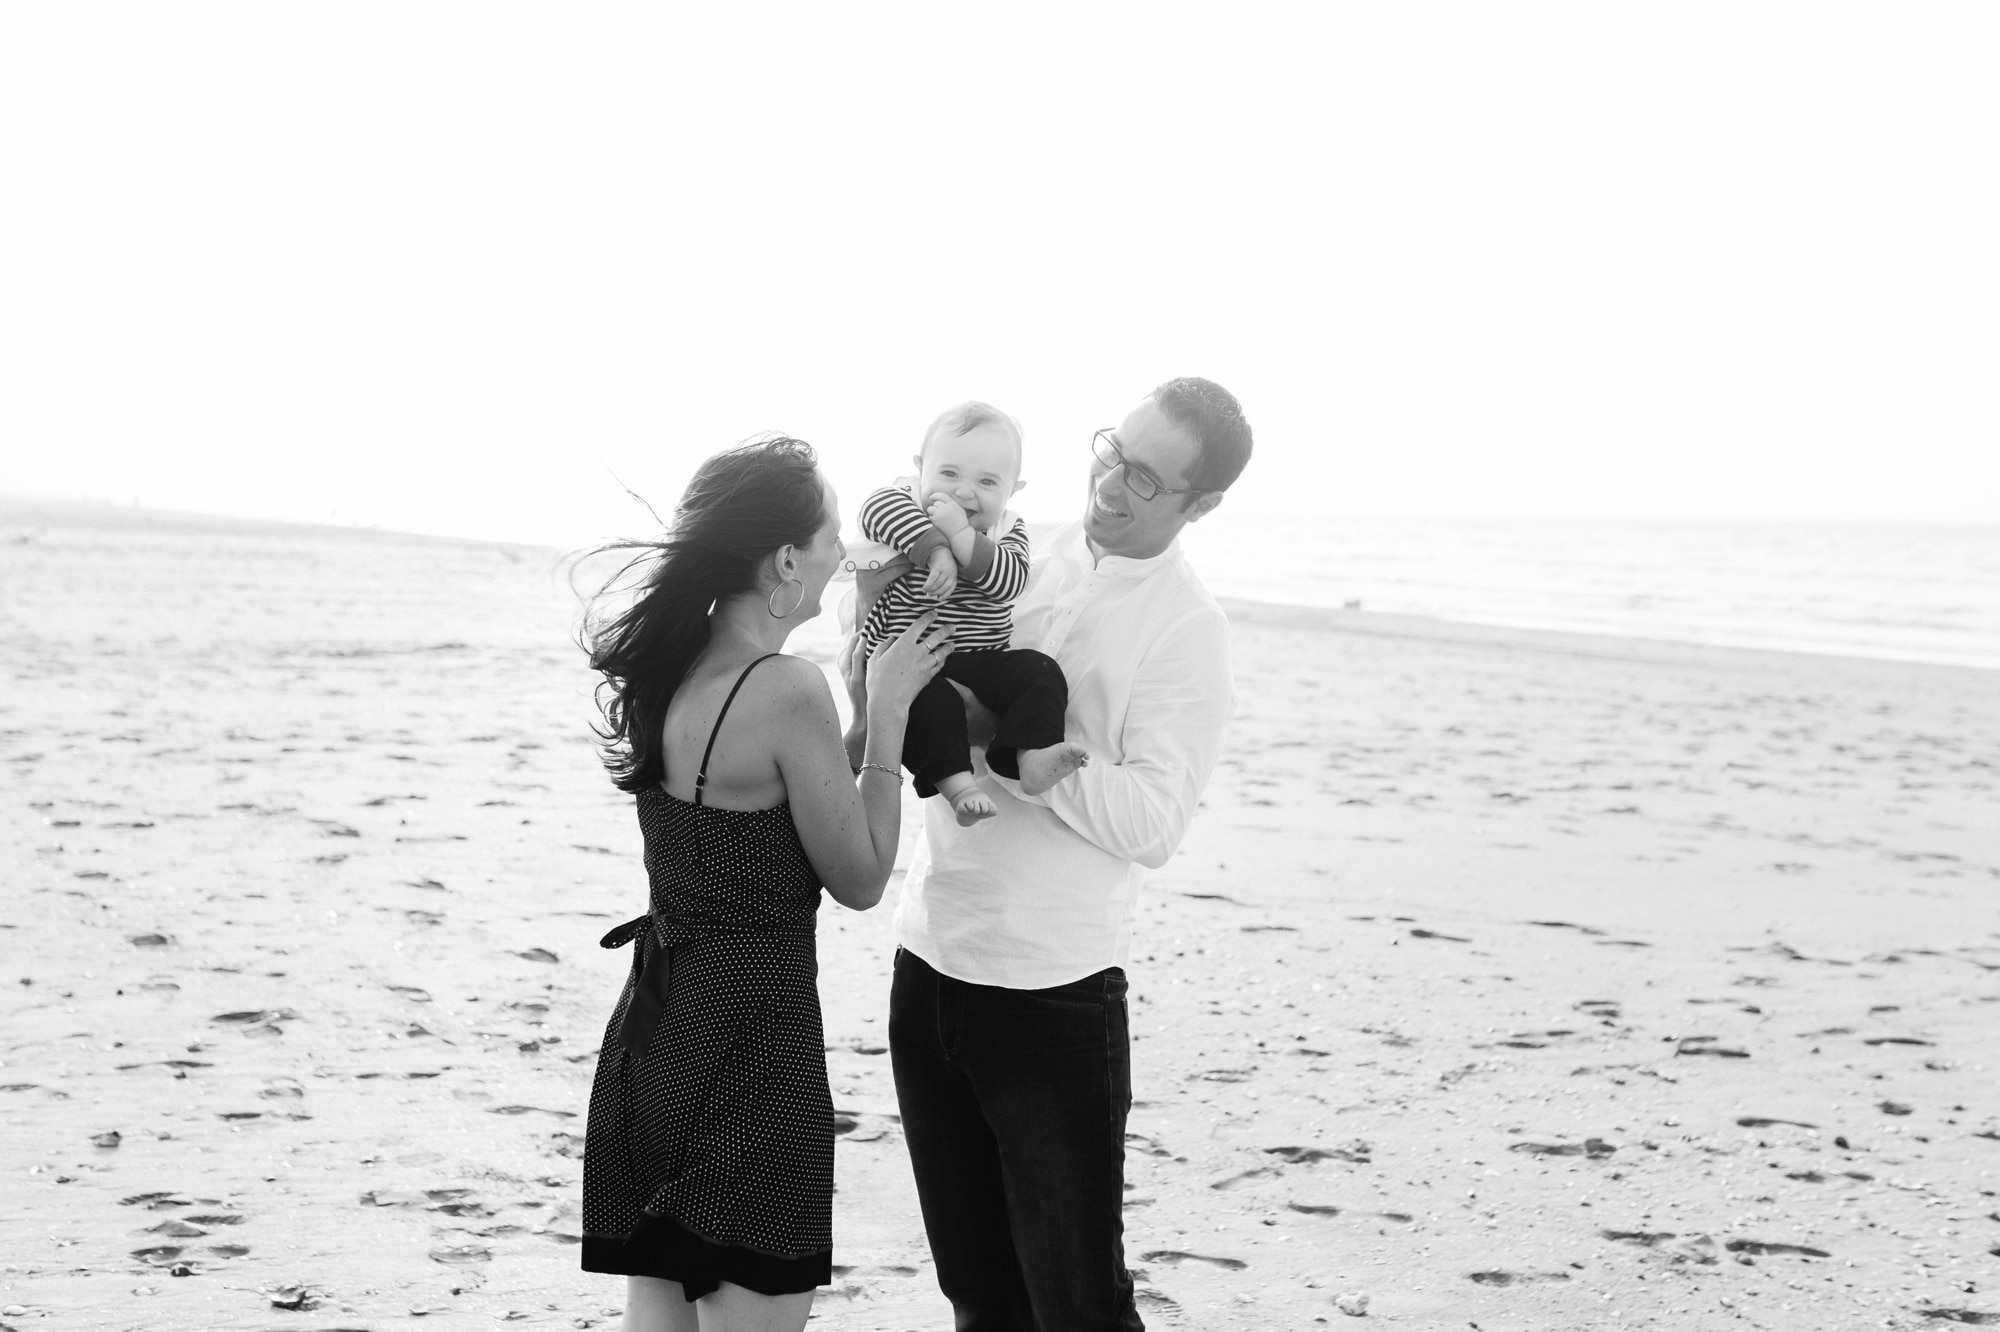 séance famille cabourg basse normandie photographe shooting lifestyle-6